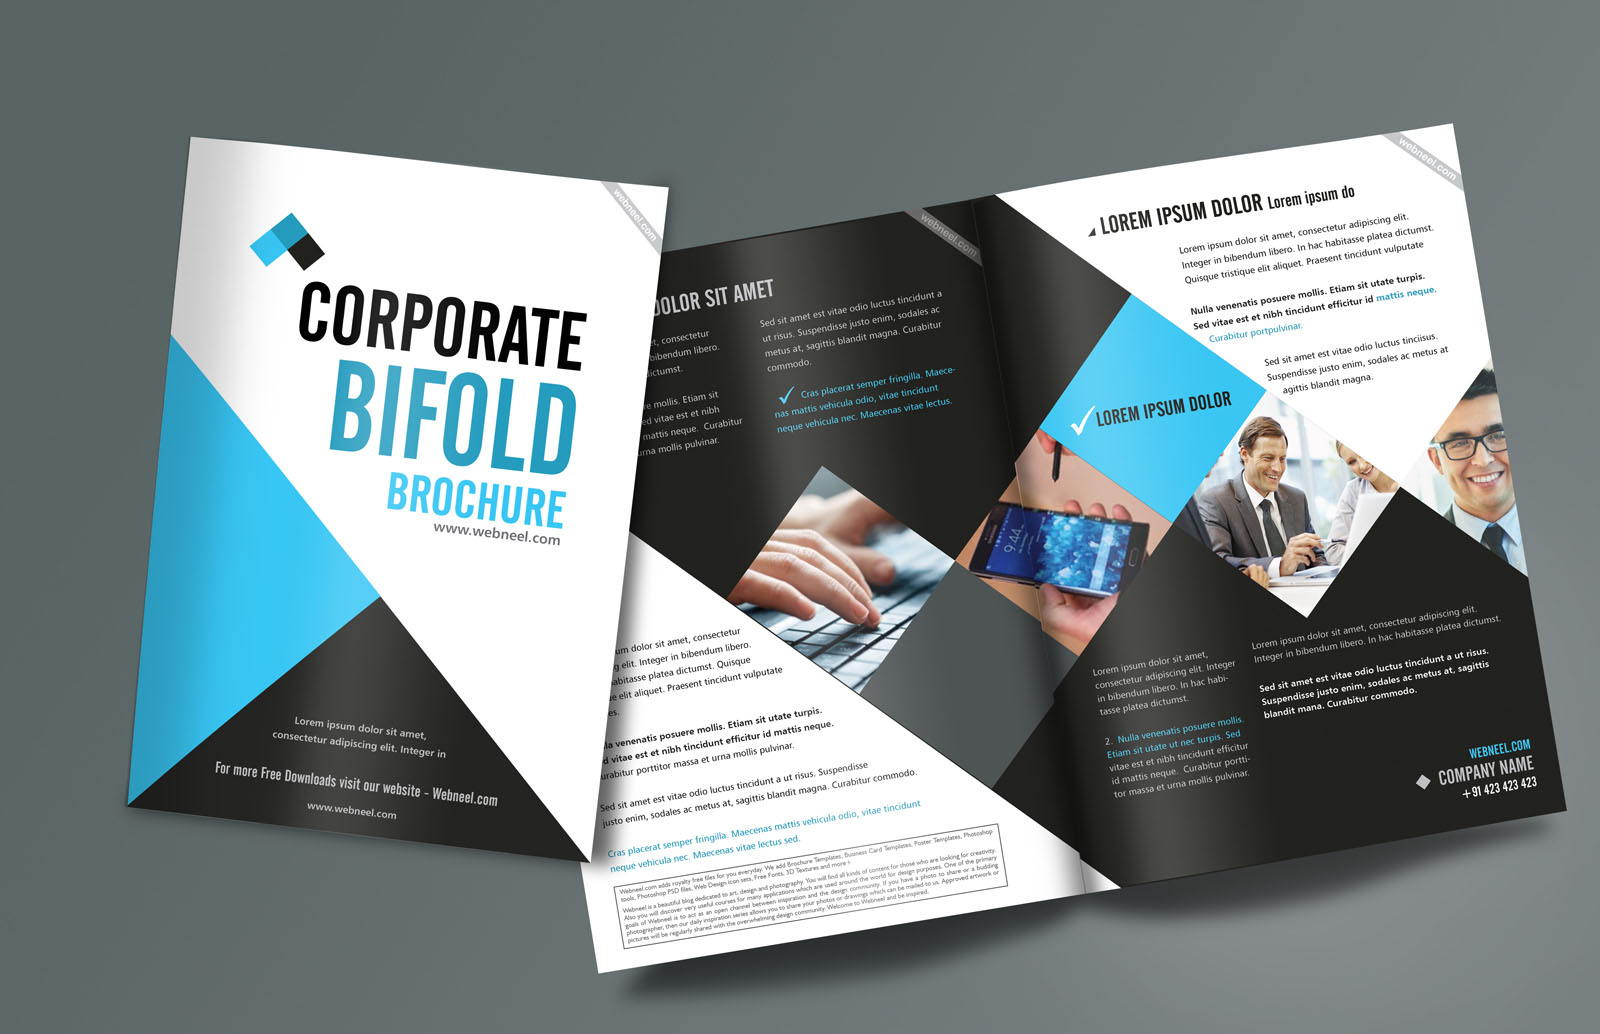 Brochures Design Yelommyphonecompanyco - Brochures design templates